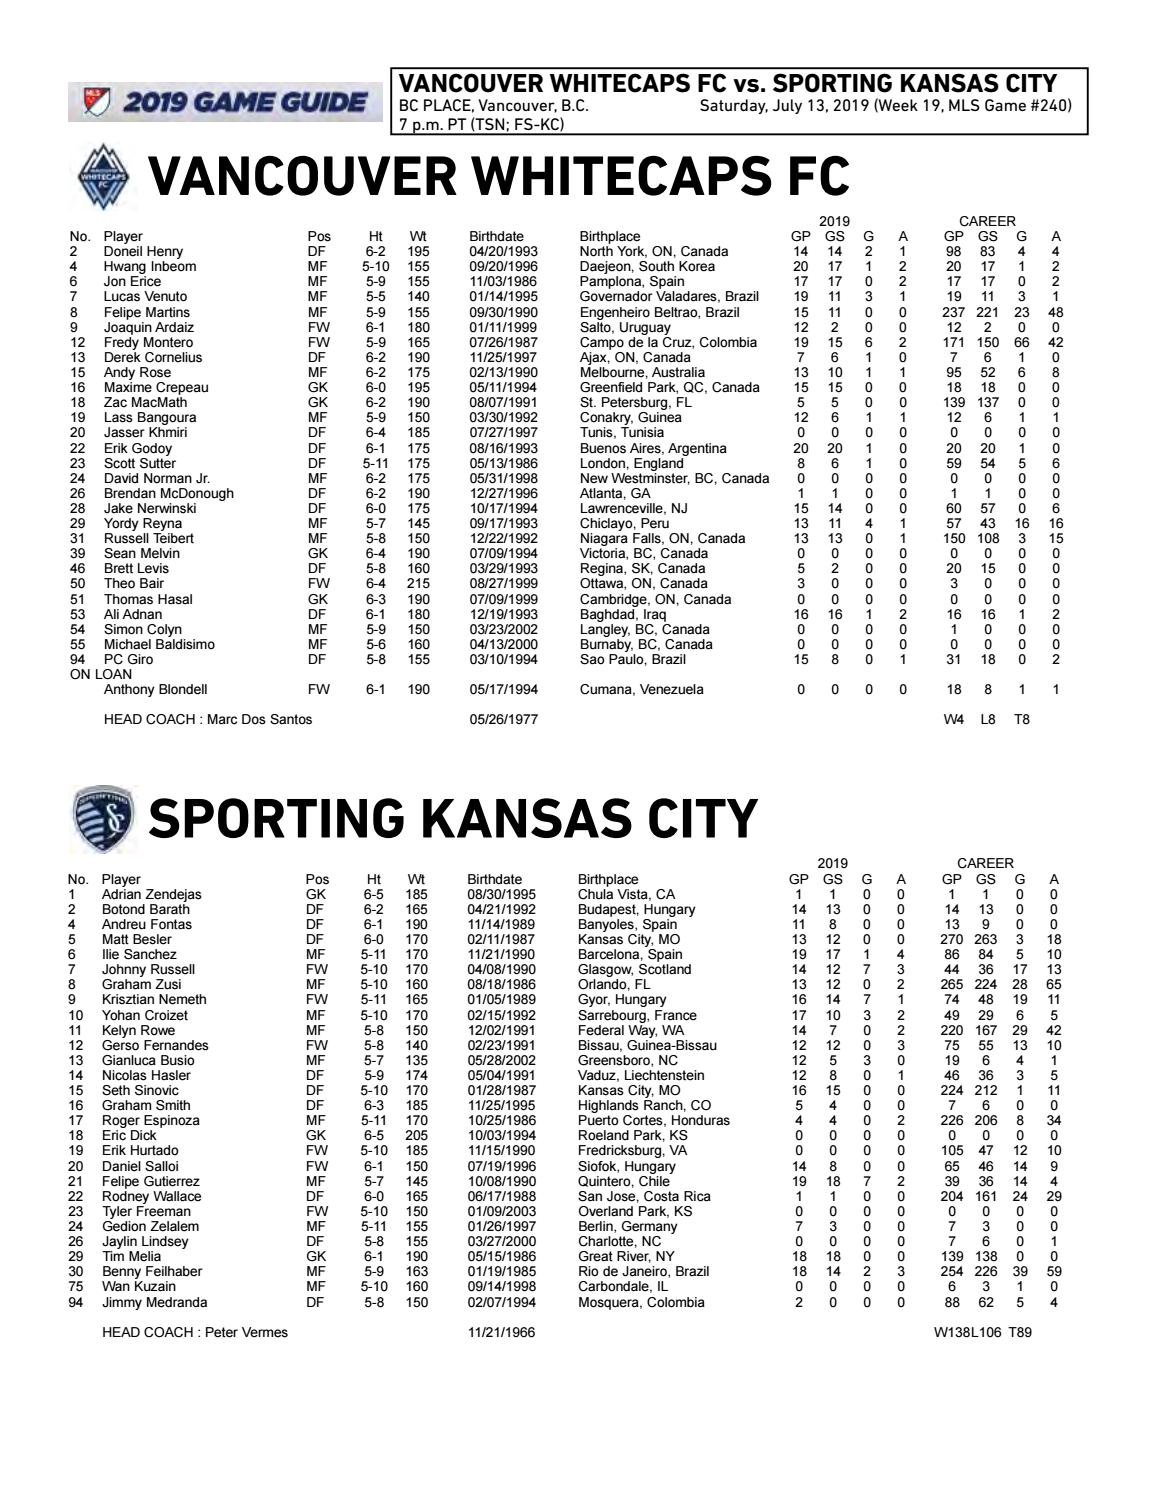 Match Notes Sporting at Vancouver Whitecaps FC